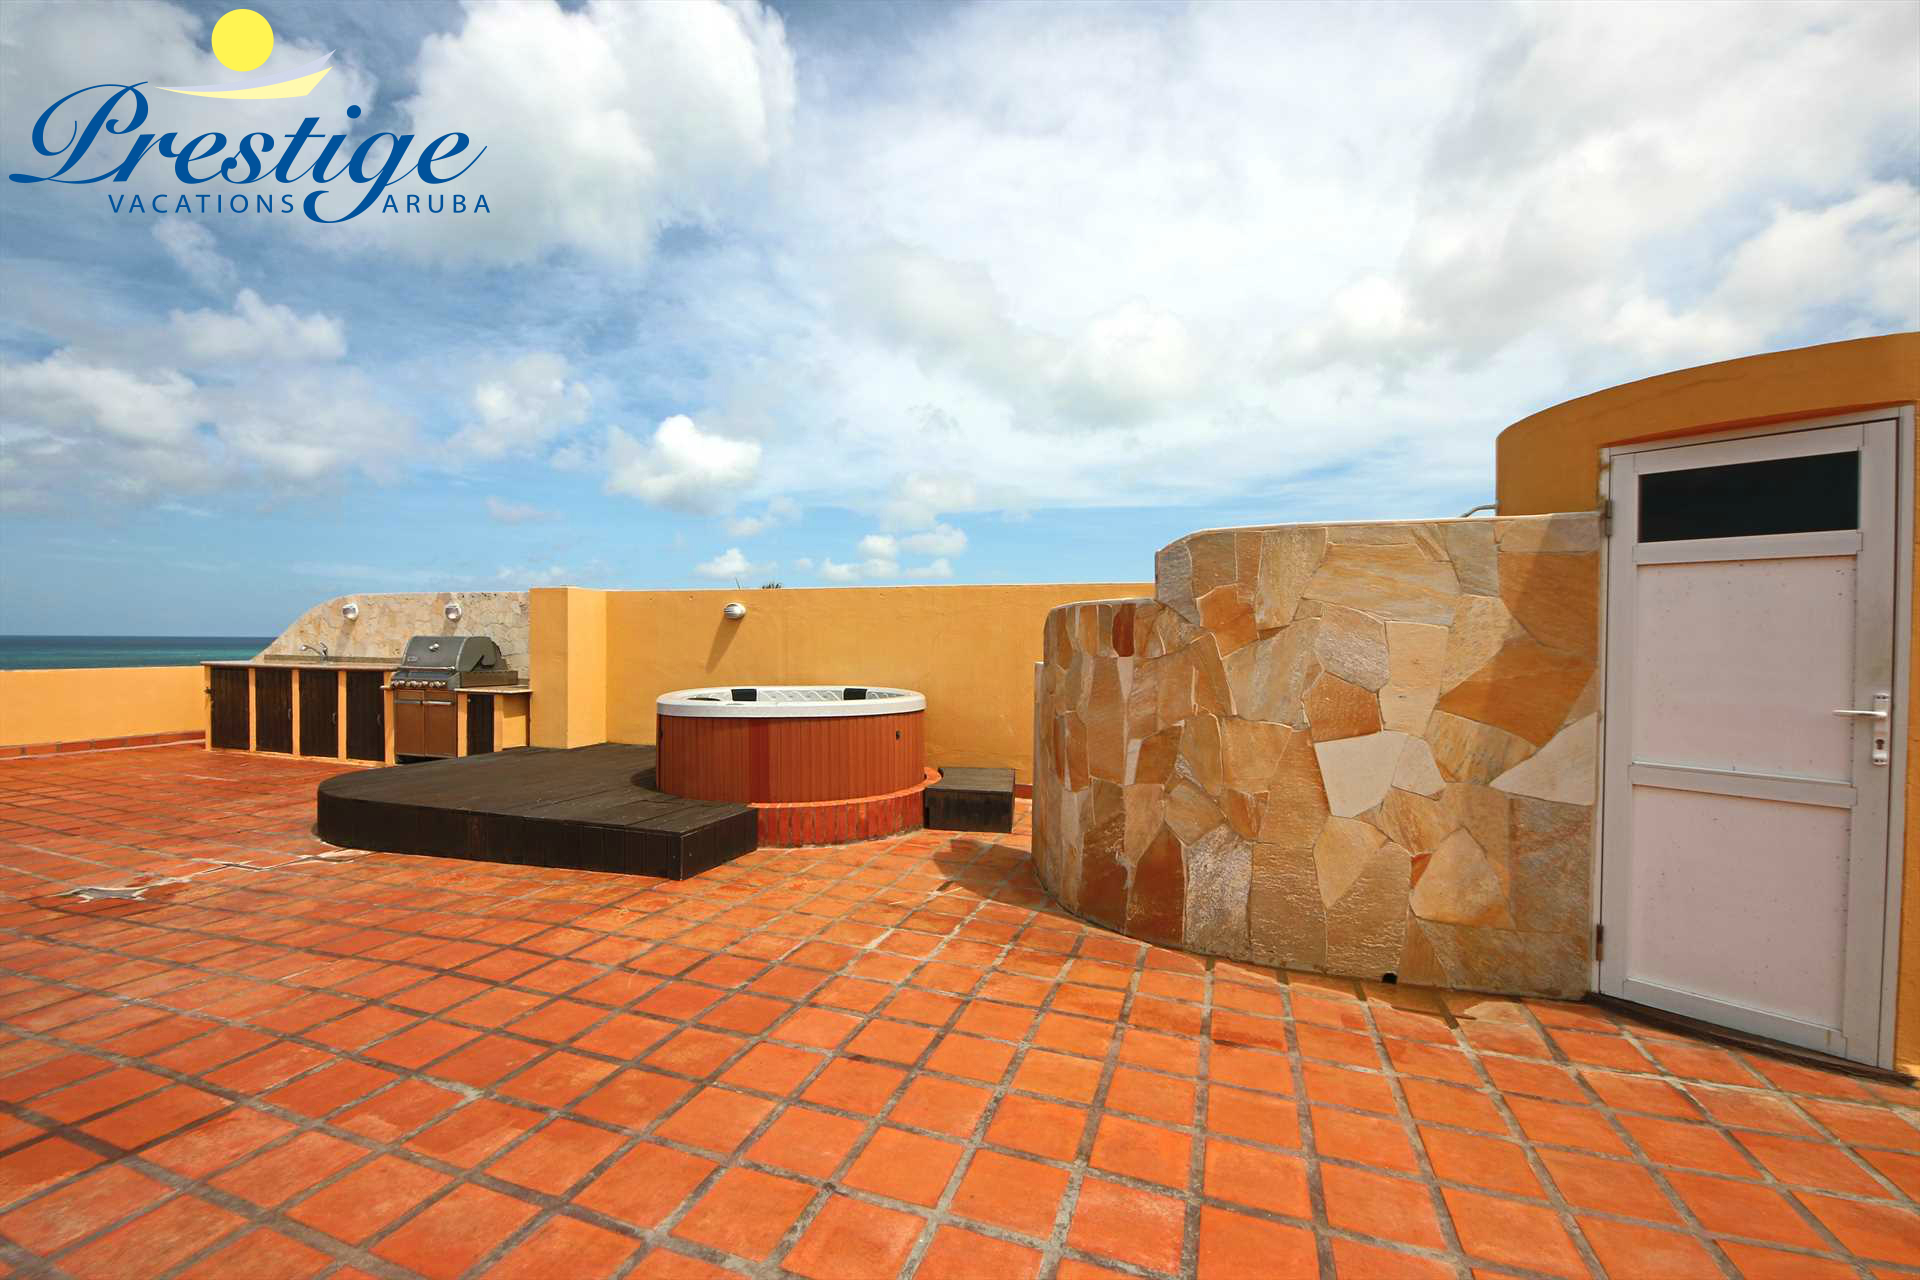 Your private rooftop terrace with hot tub, outdoor kitchen with BBQ-grill, and outdoor shower